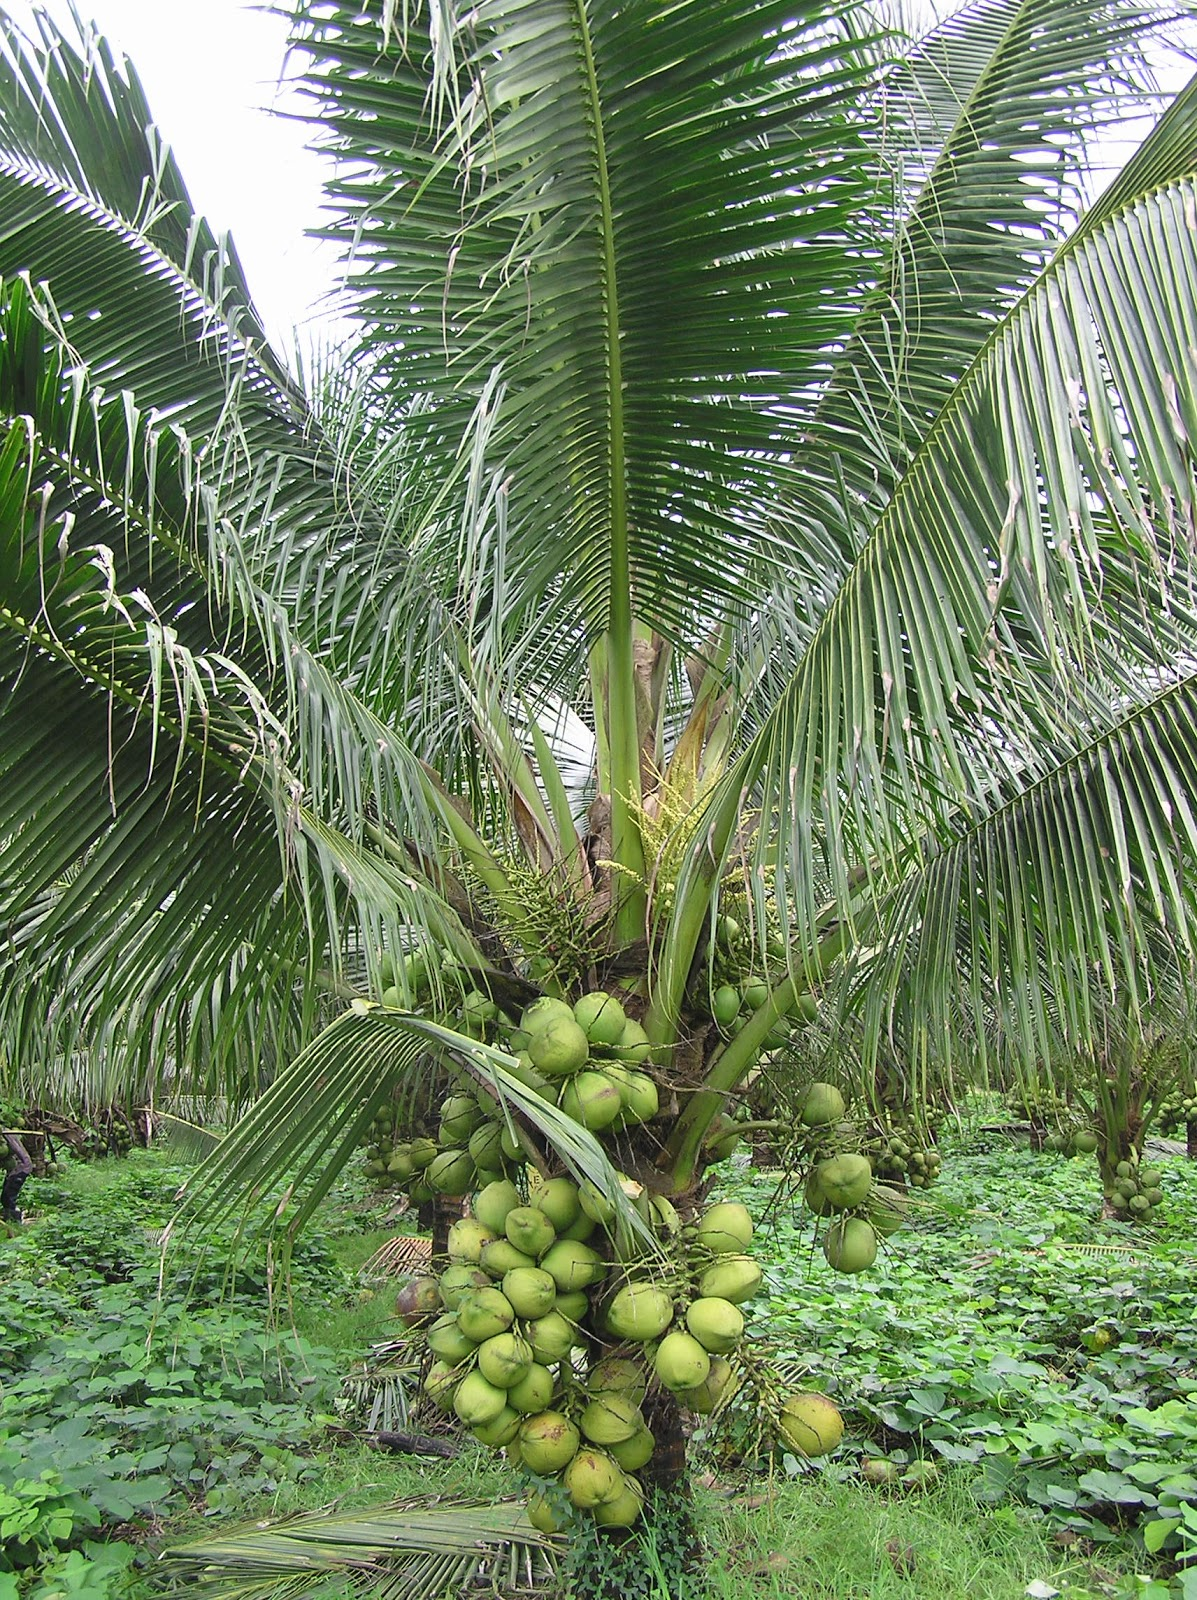 Malayan Red Dwarf coconut palm. Photo by Trainee Agriculturist in Malaysia.